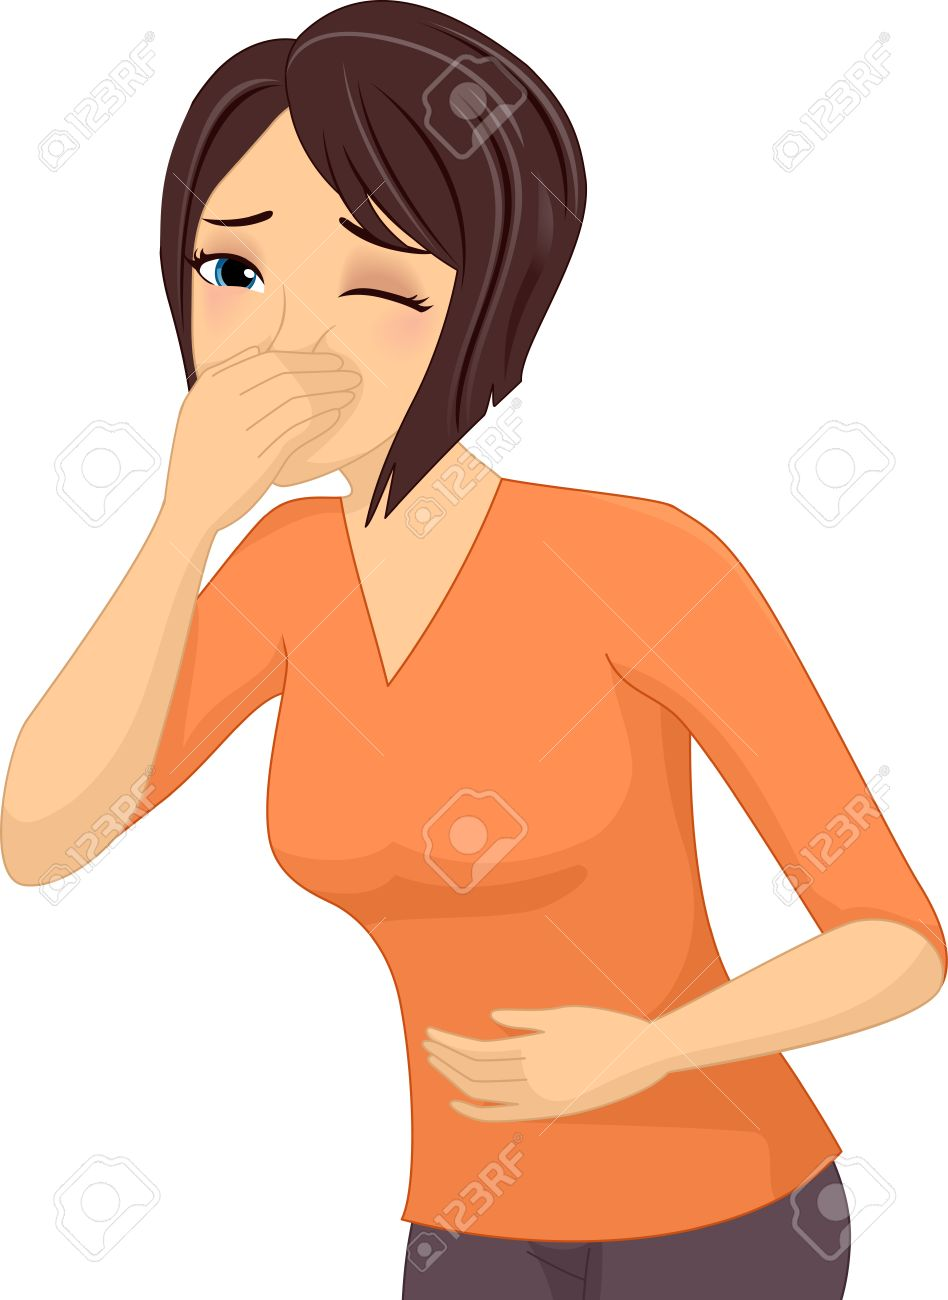 illustration of a sick girl about to throw up stock photo, picture